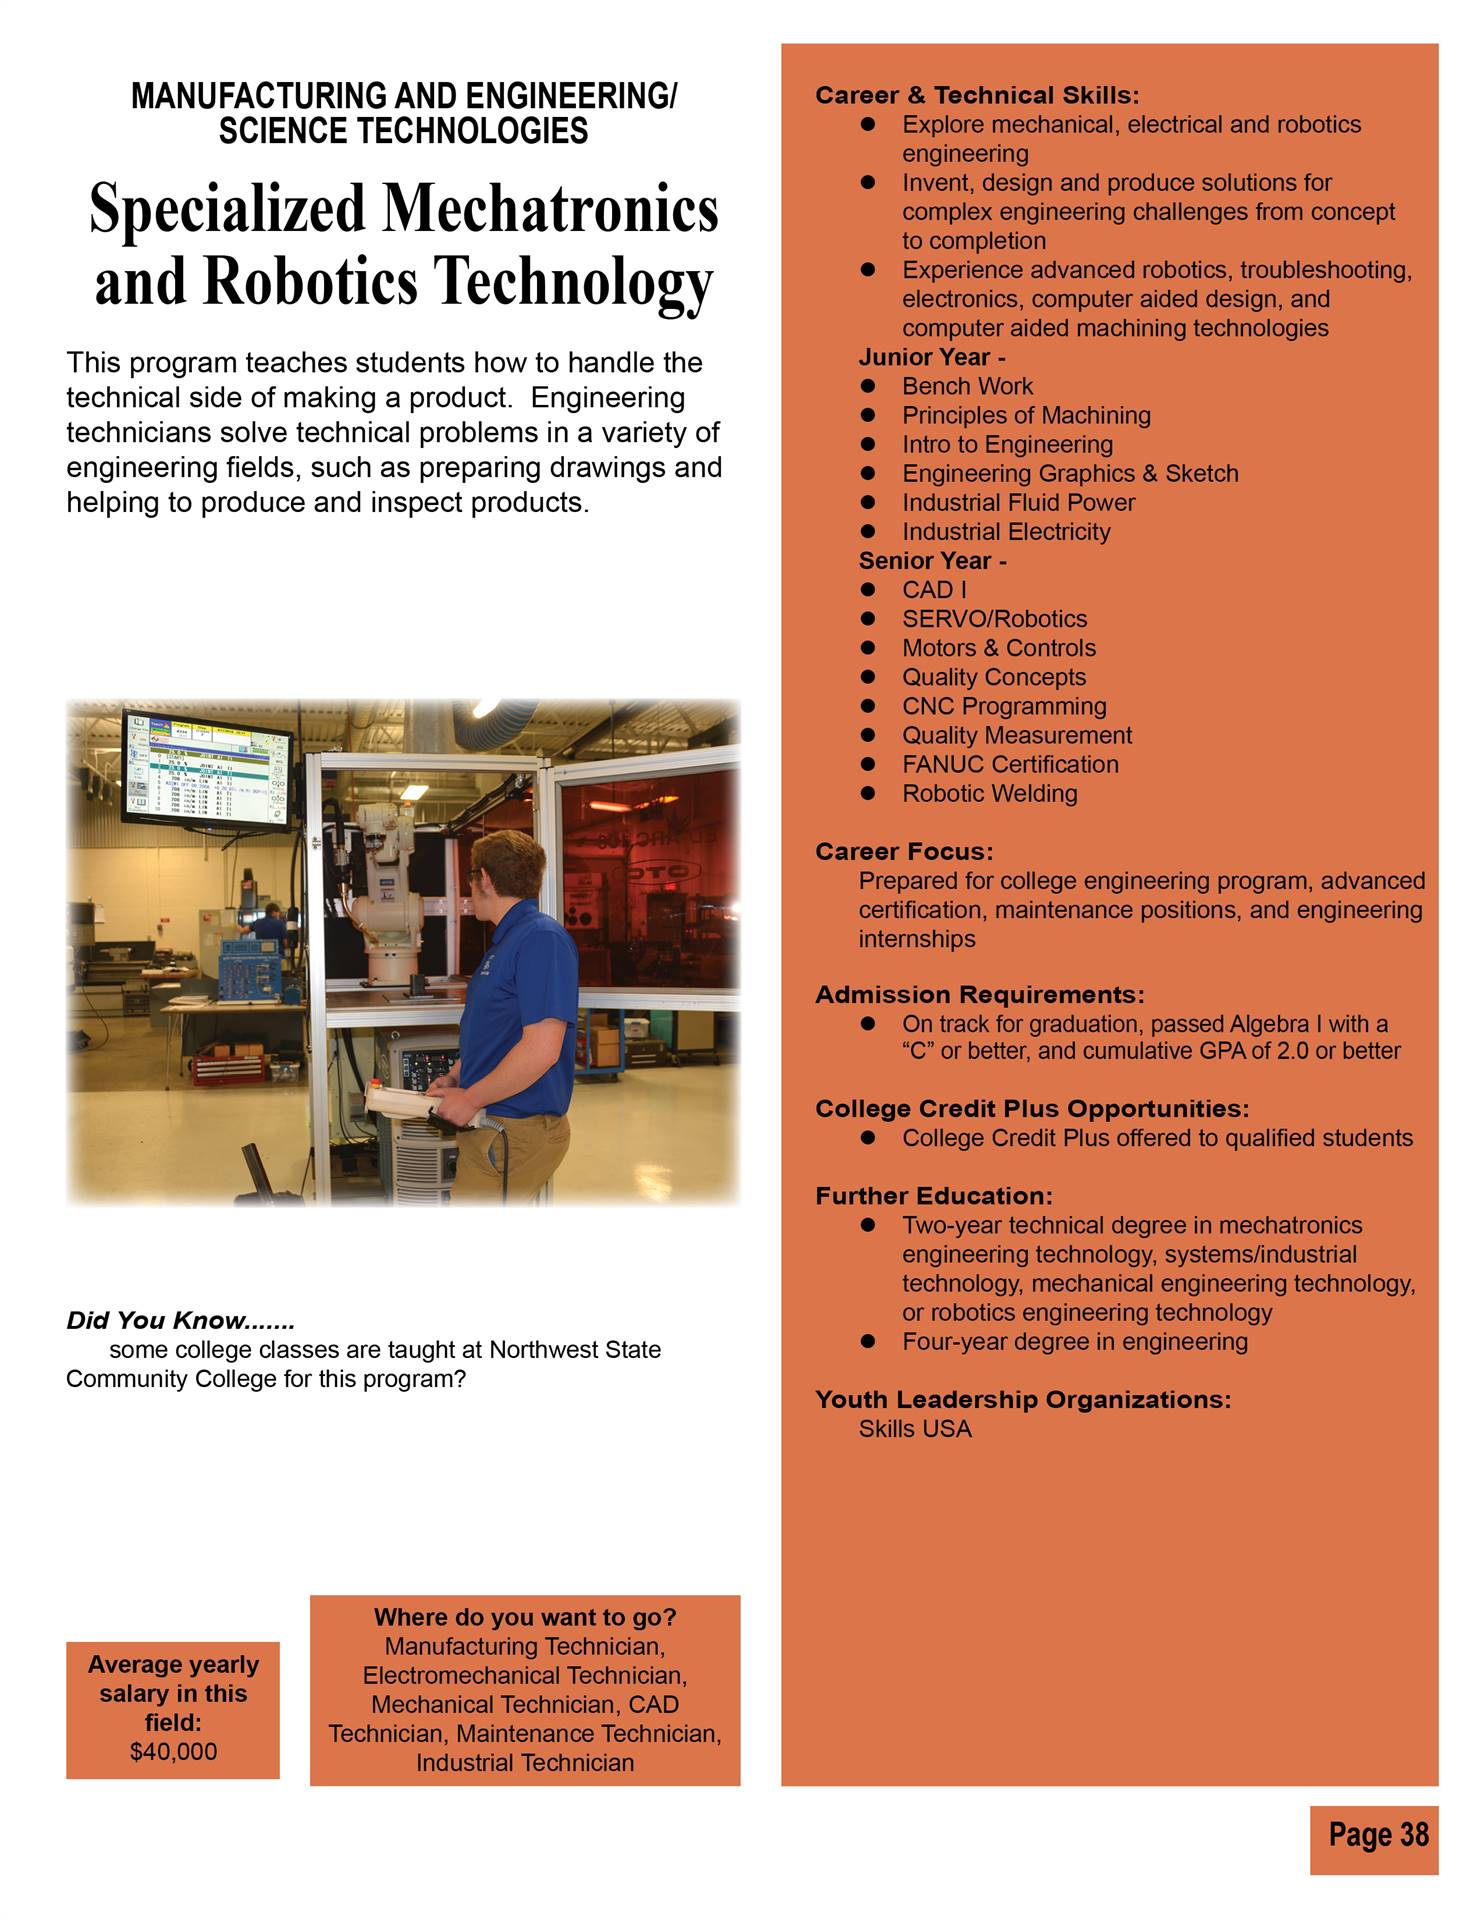 Specialized Mechatronics and Robotics Technology